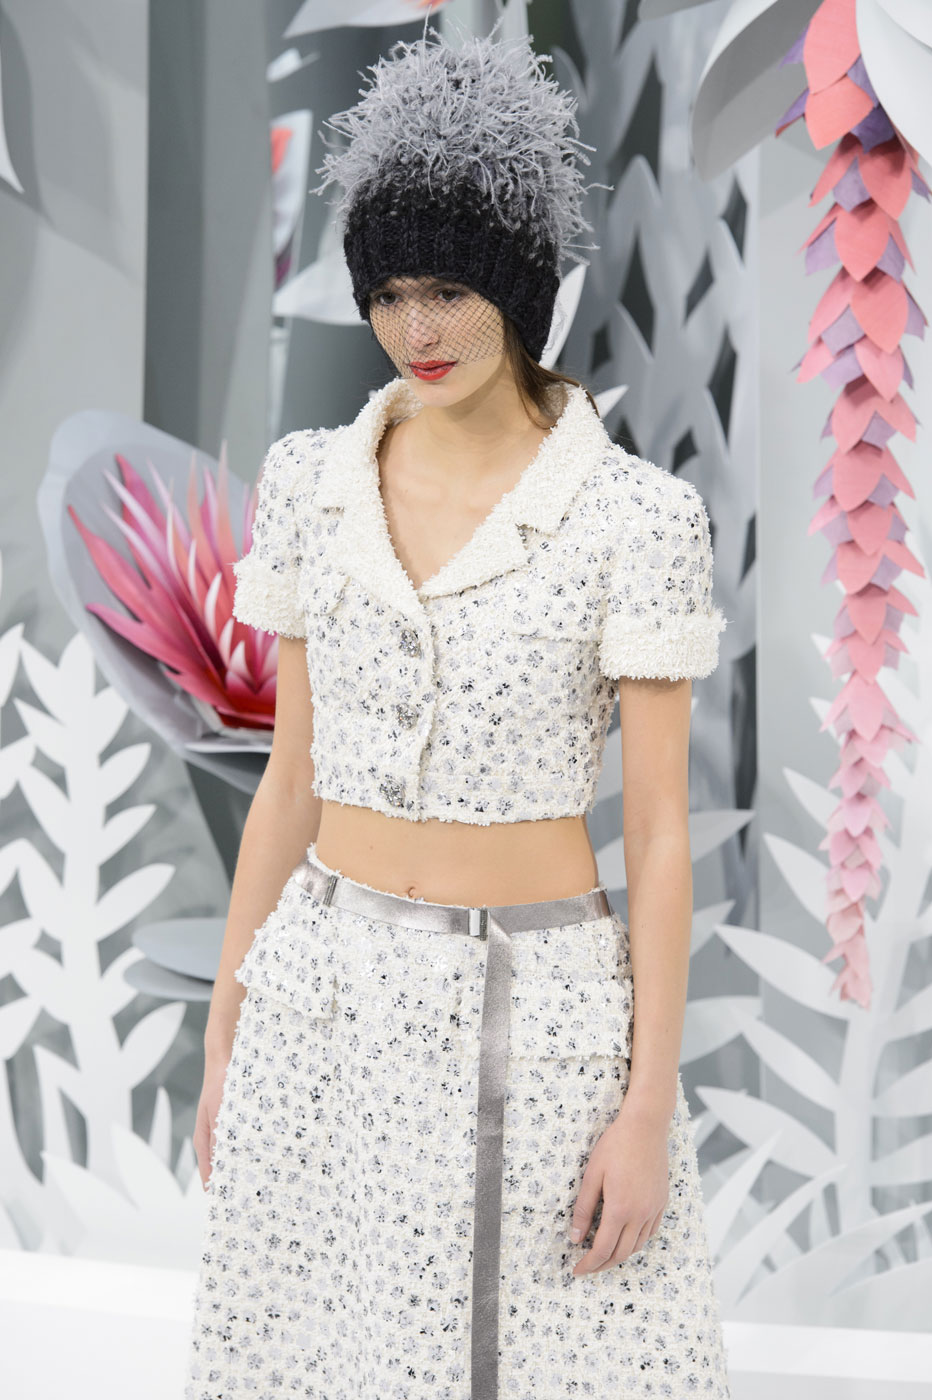 Chanel-fashion-runway-show-haute-couture-paris-spring-summer-2015-the-impression-053